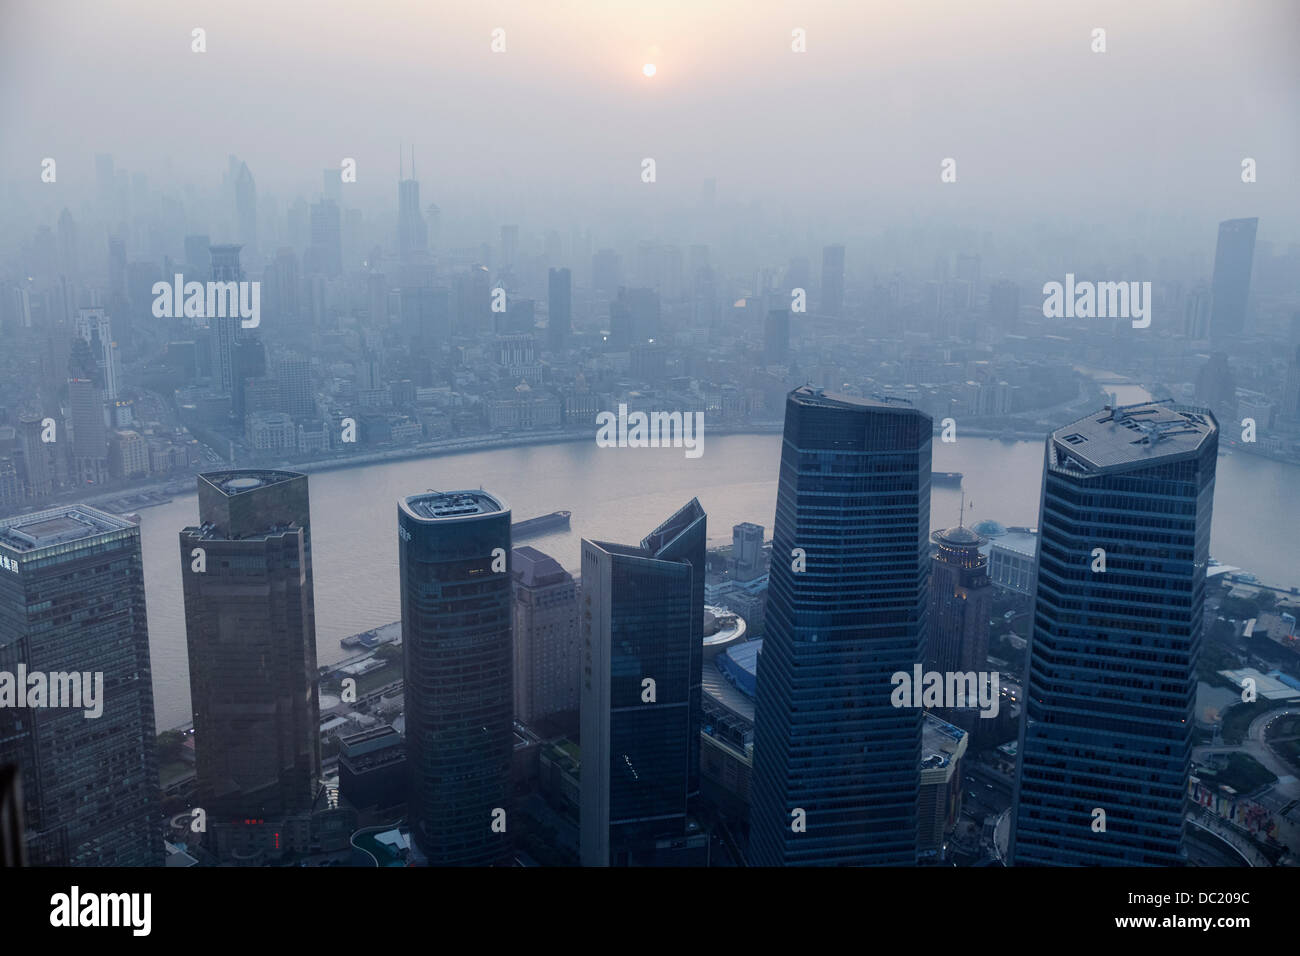 High angle view of misty cityscape, Shanghai, China - Stock Image